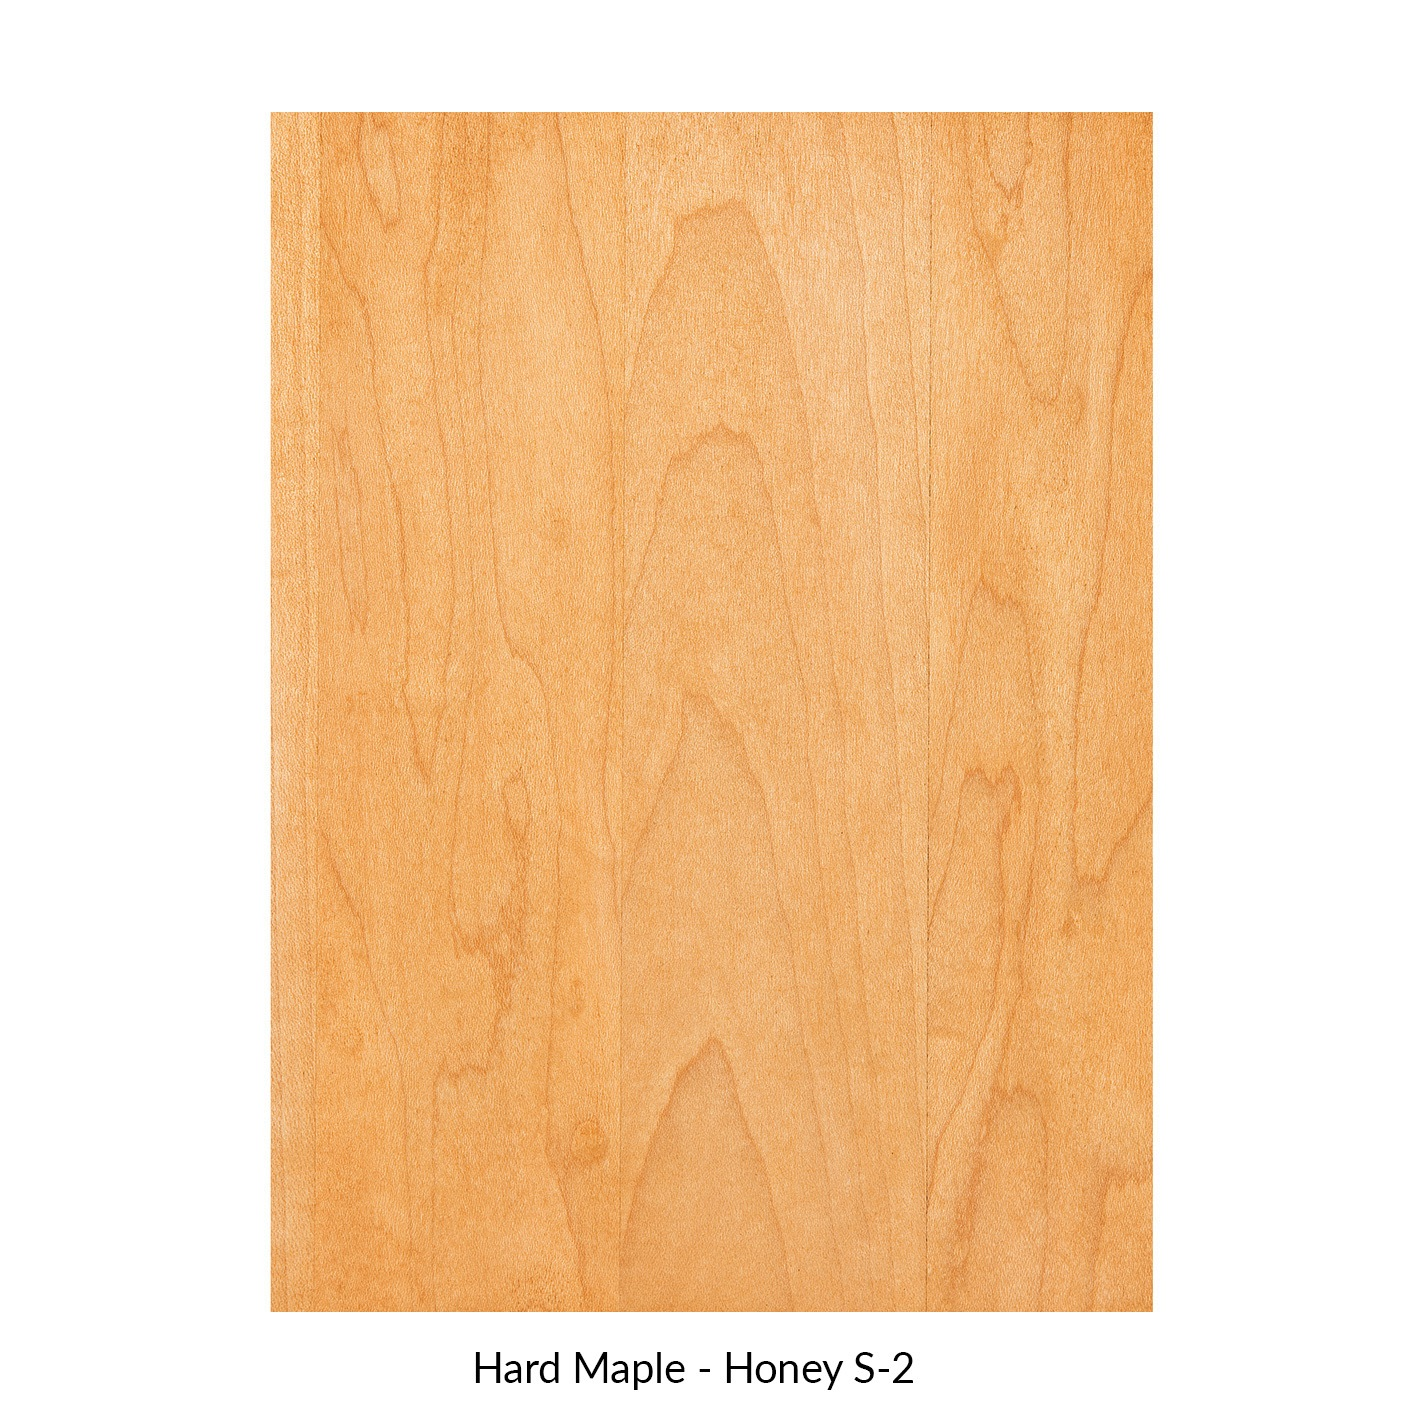 spectrum-hard-maple-honey-s-2.jpg